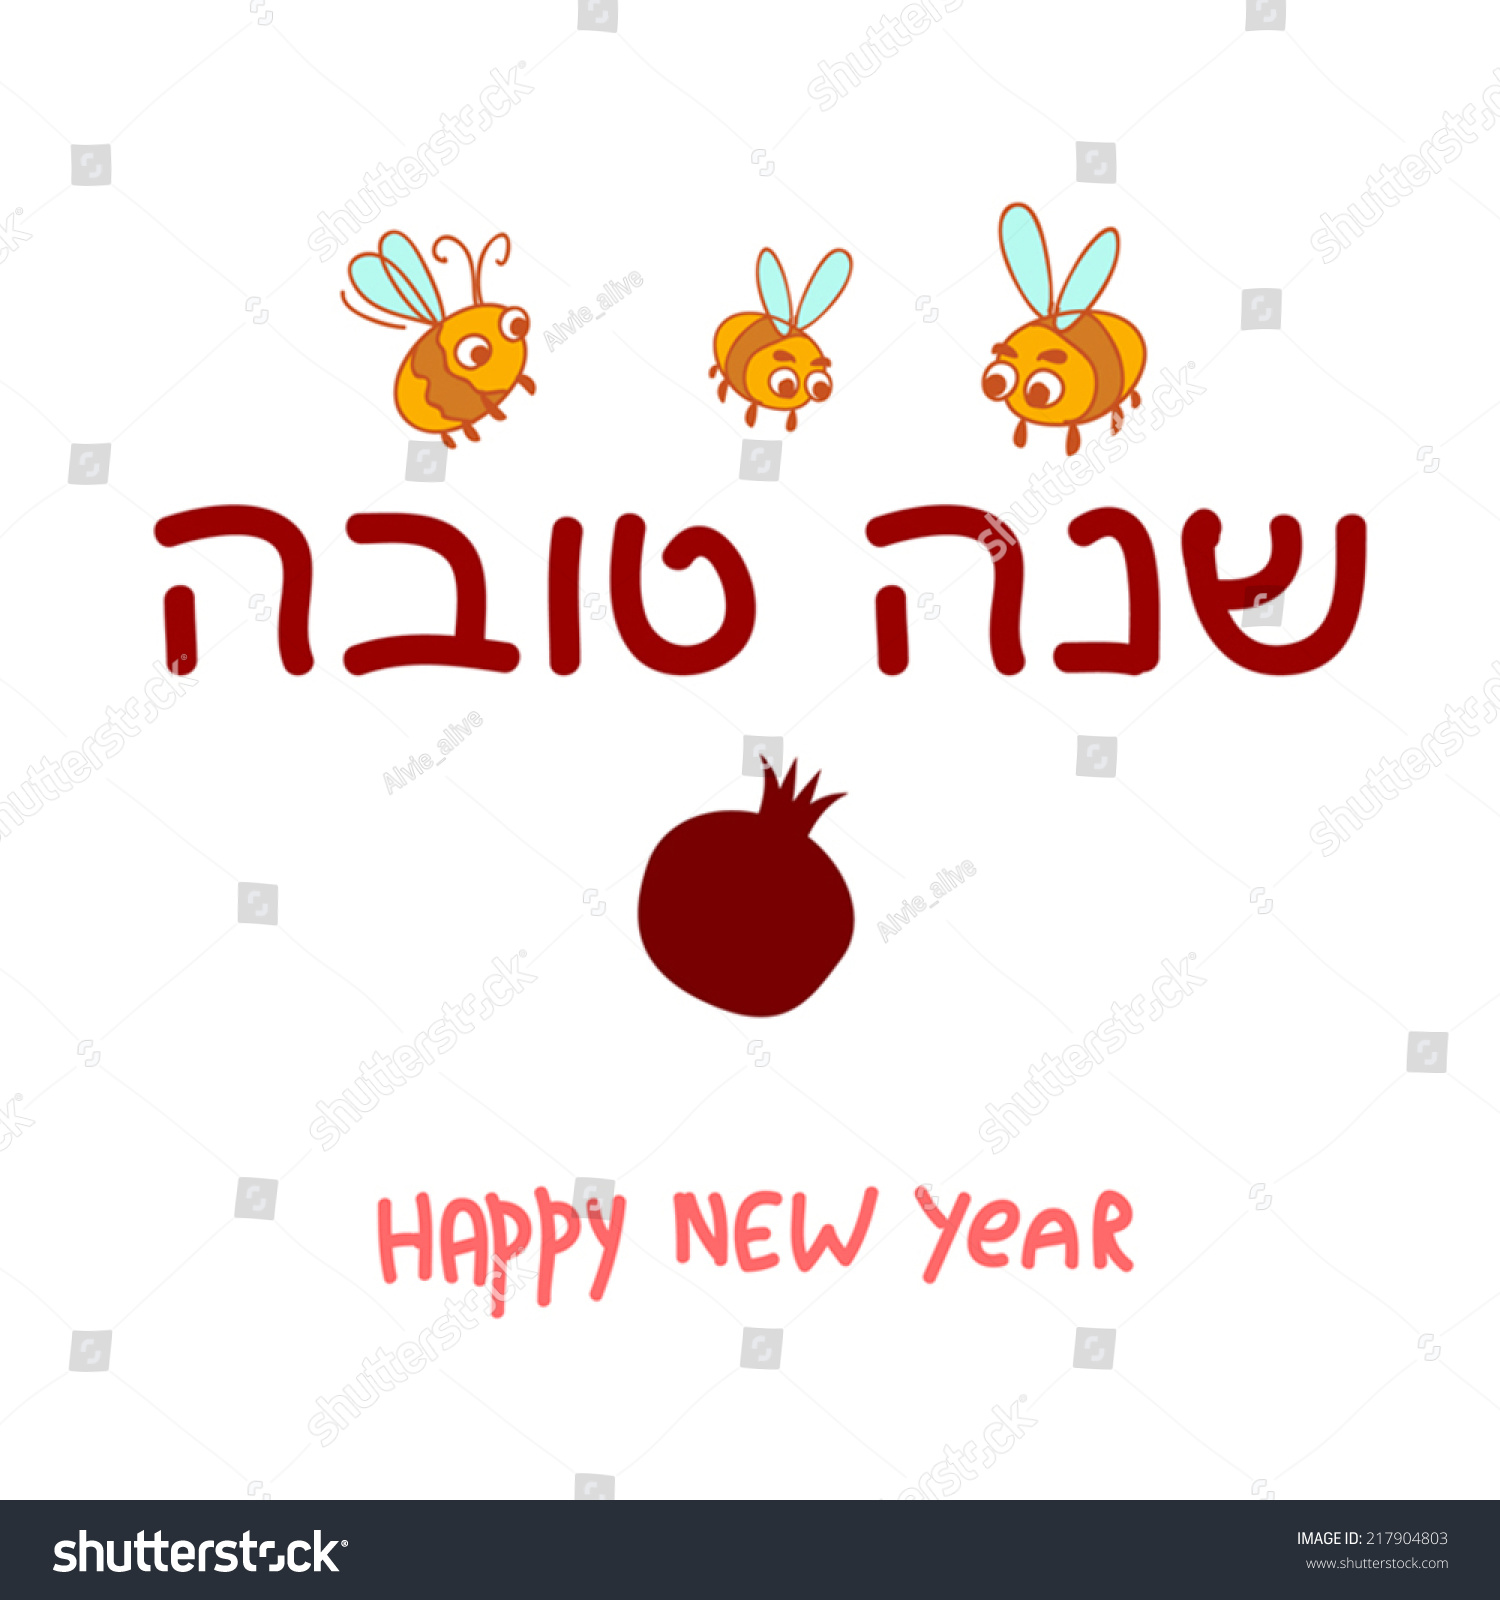 Happy jewish new year card hebrew stock vector 217904803 happy jewish new year card with hebrew text pomegranate silhouettes and cartoon cute bees characters kristyandbryce Image collections